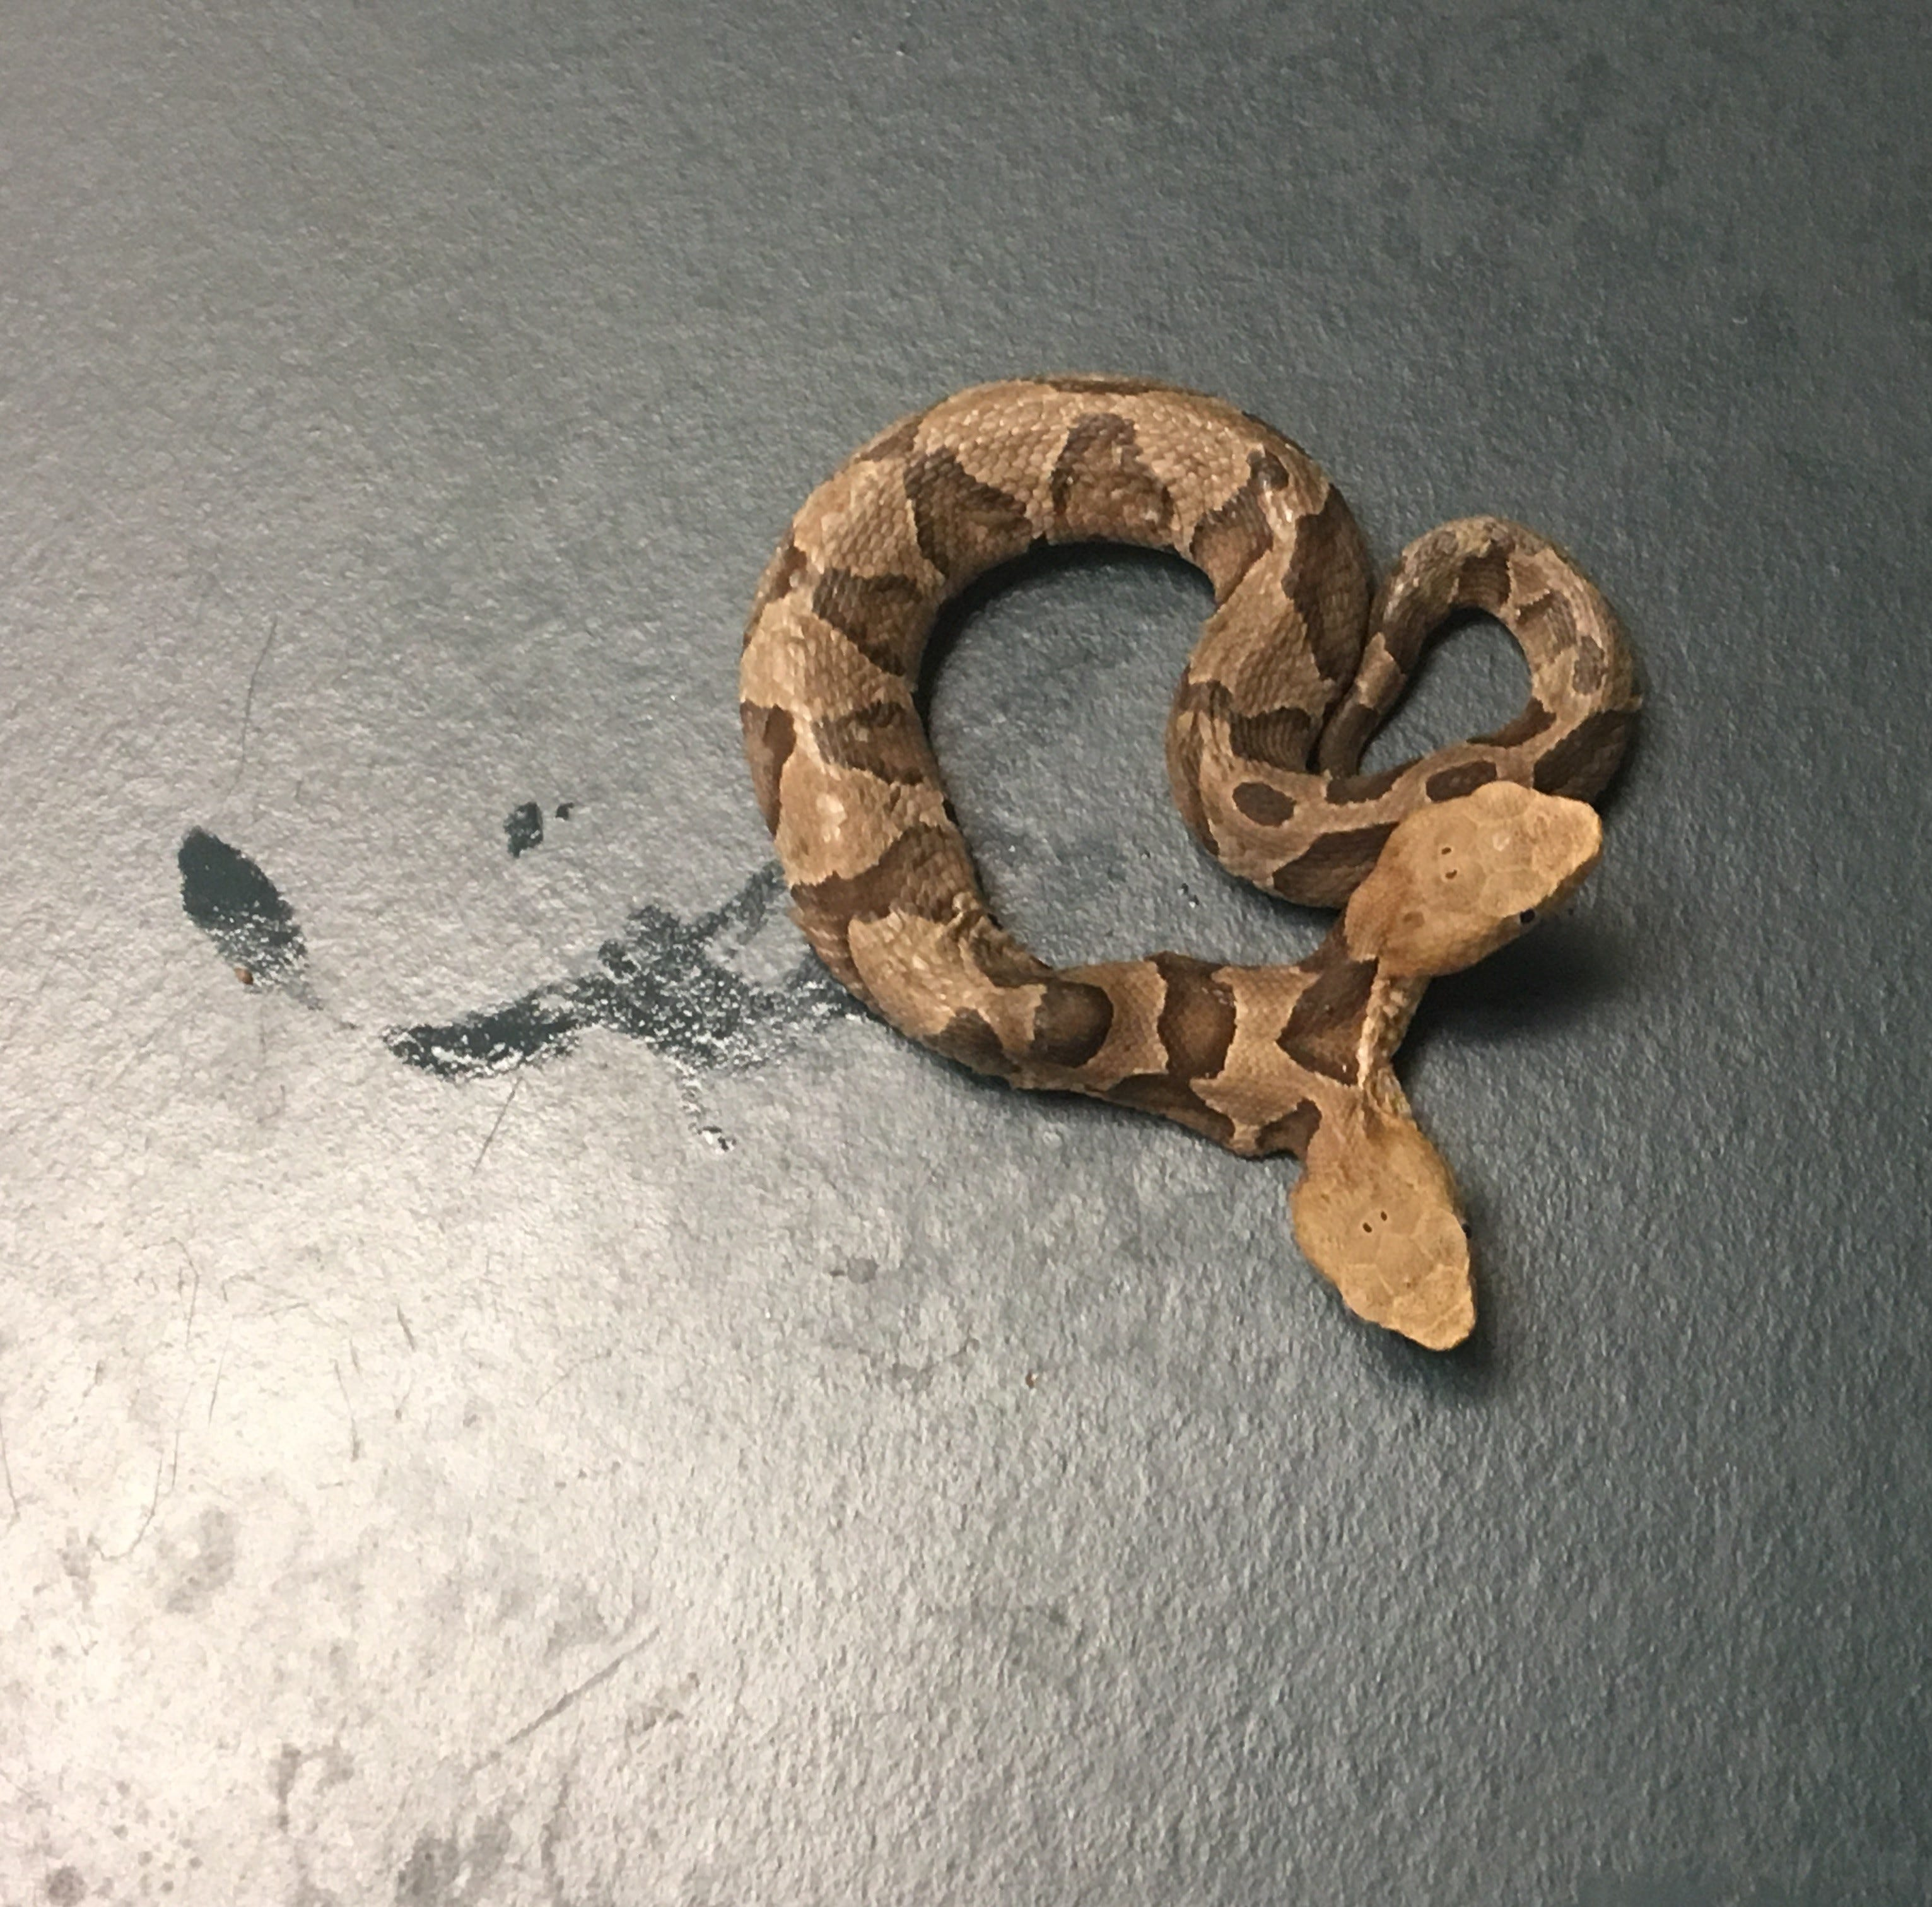 A two-headed copperhead was taken into the Wildlife Center of Virginia Sept. 20 after it was found in Northern Virginia.